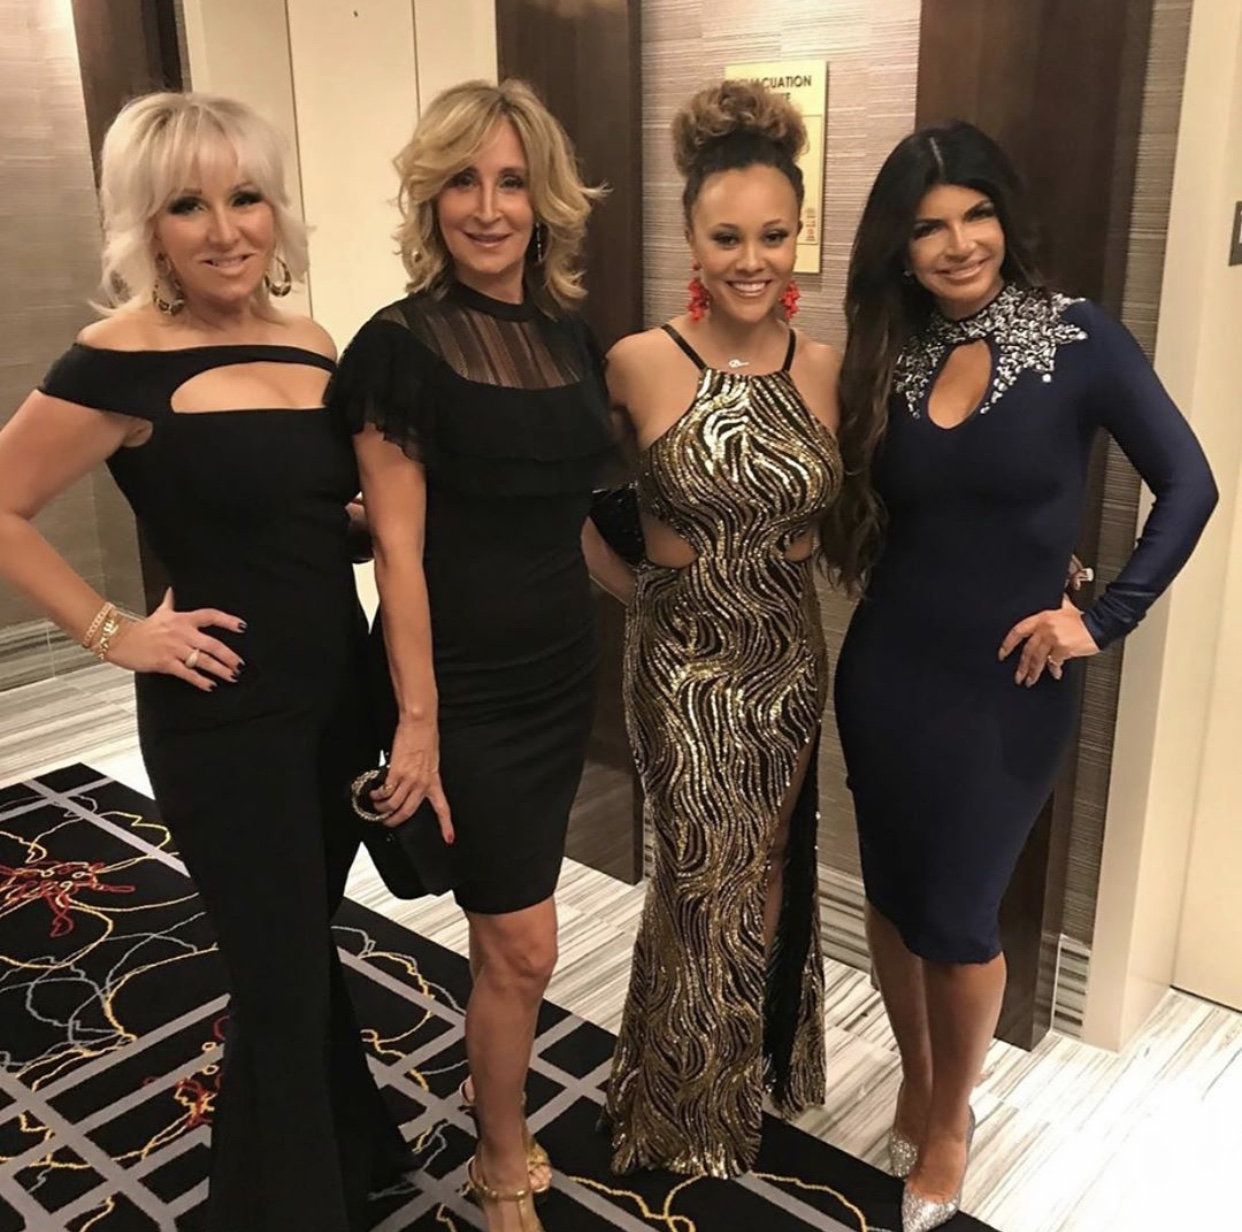 A Night at Live! Hotel & Casino with The Real Housewives